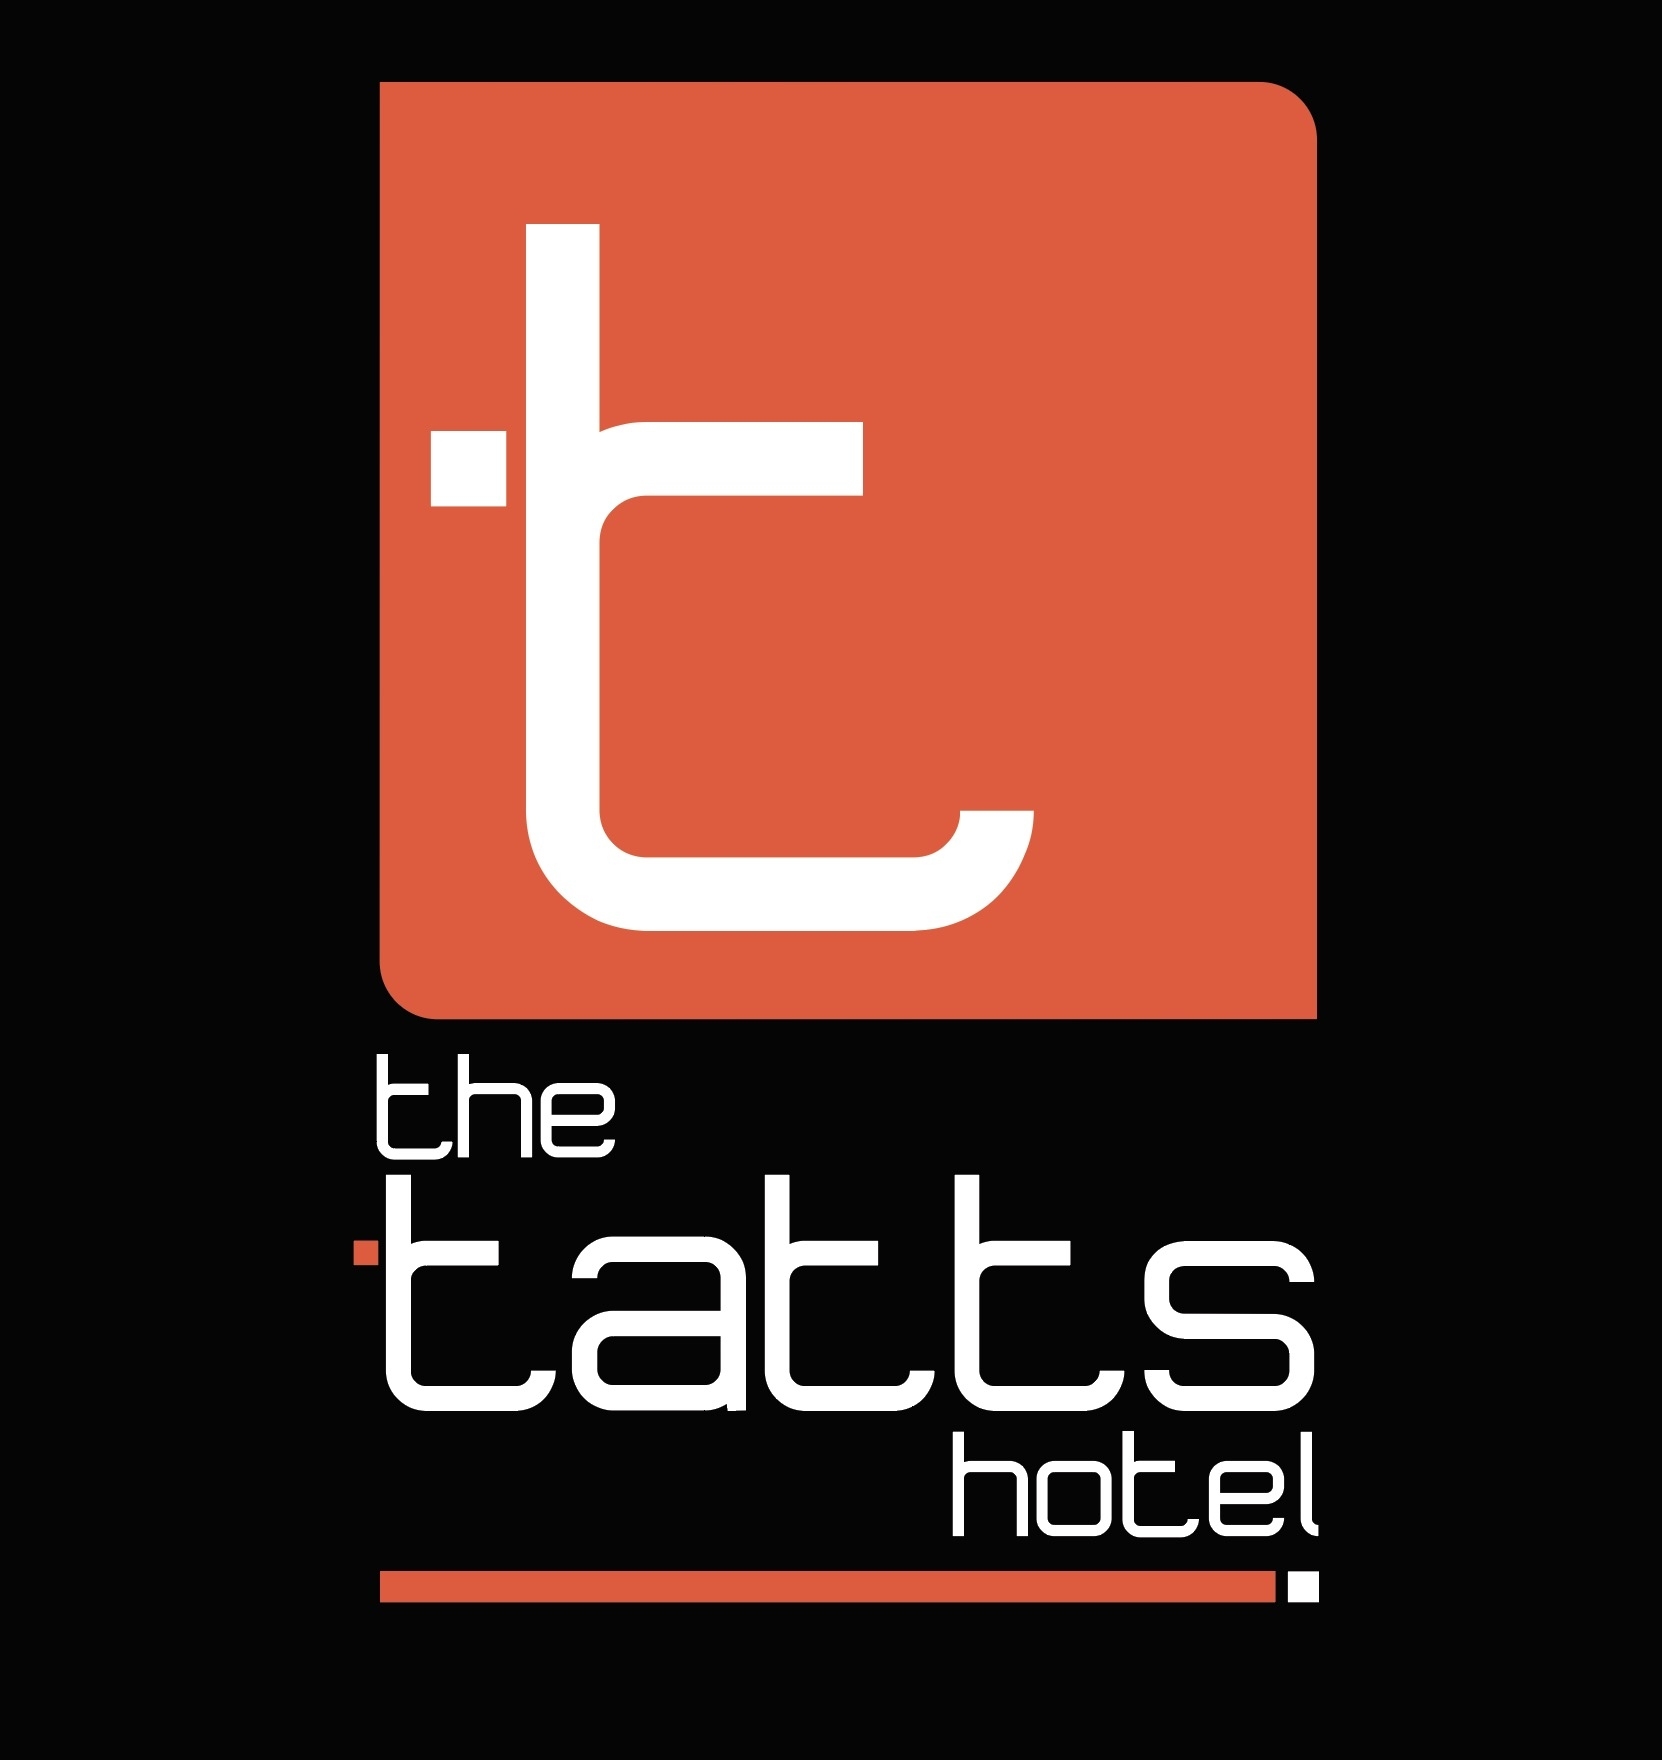 Tatts Hotel Logo design